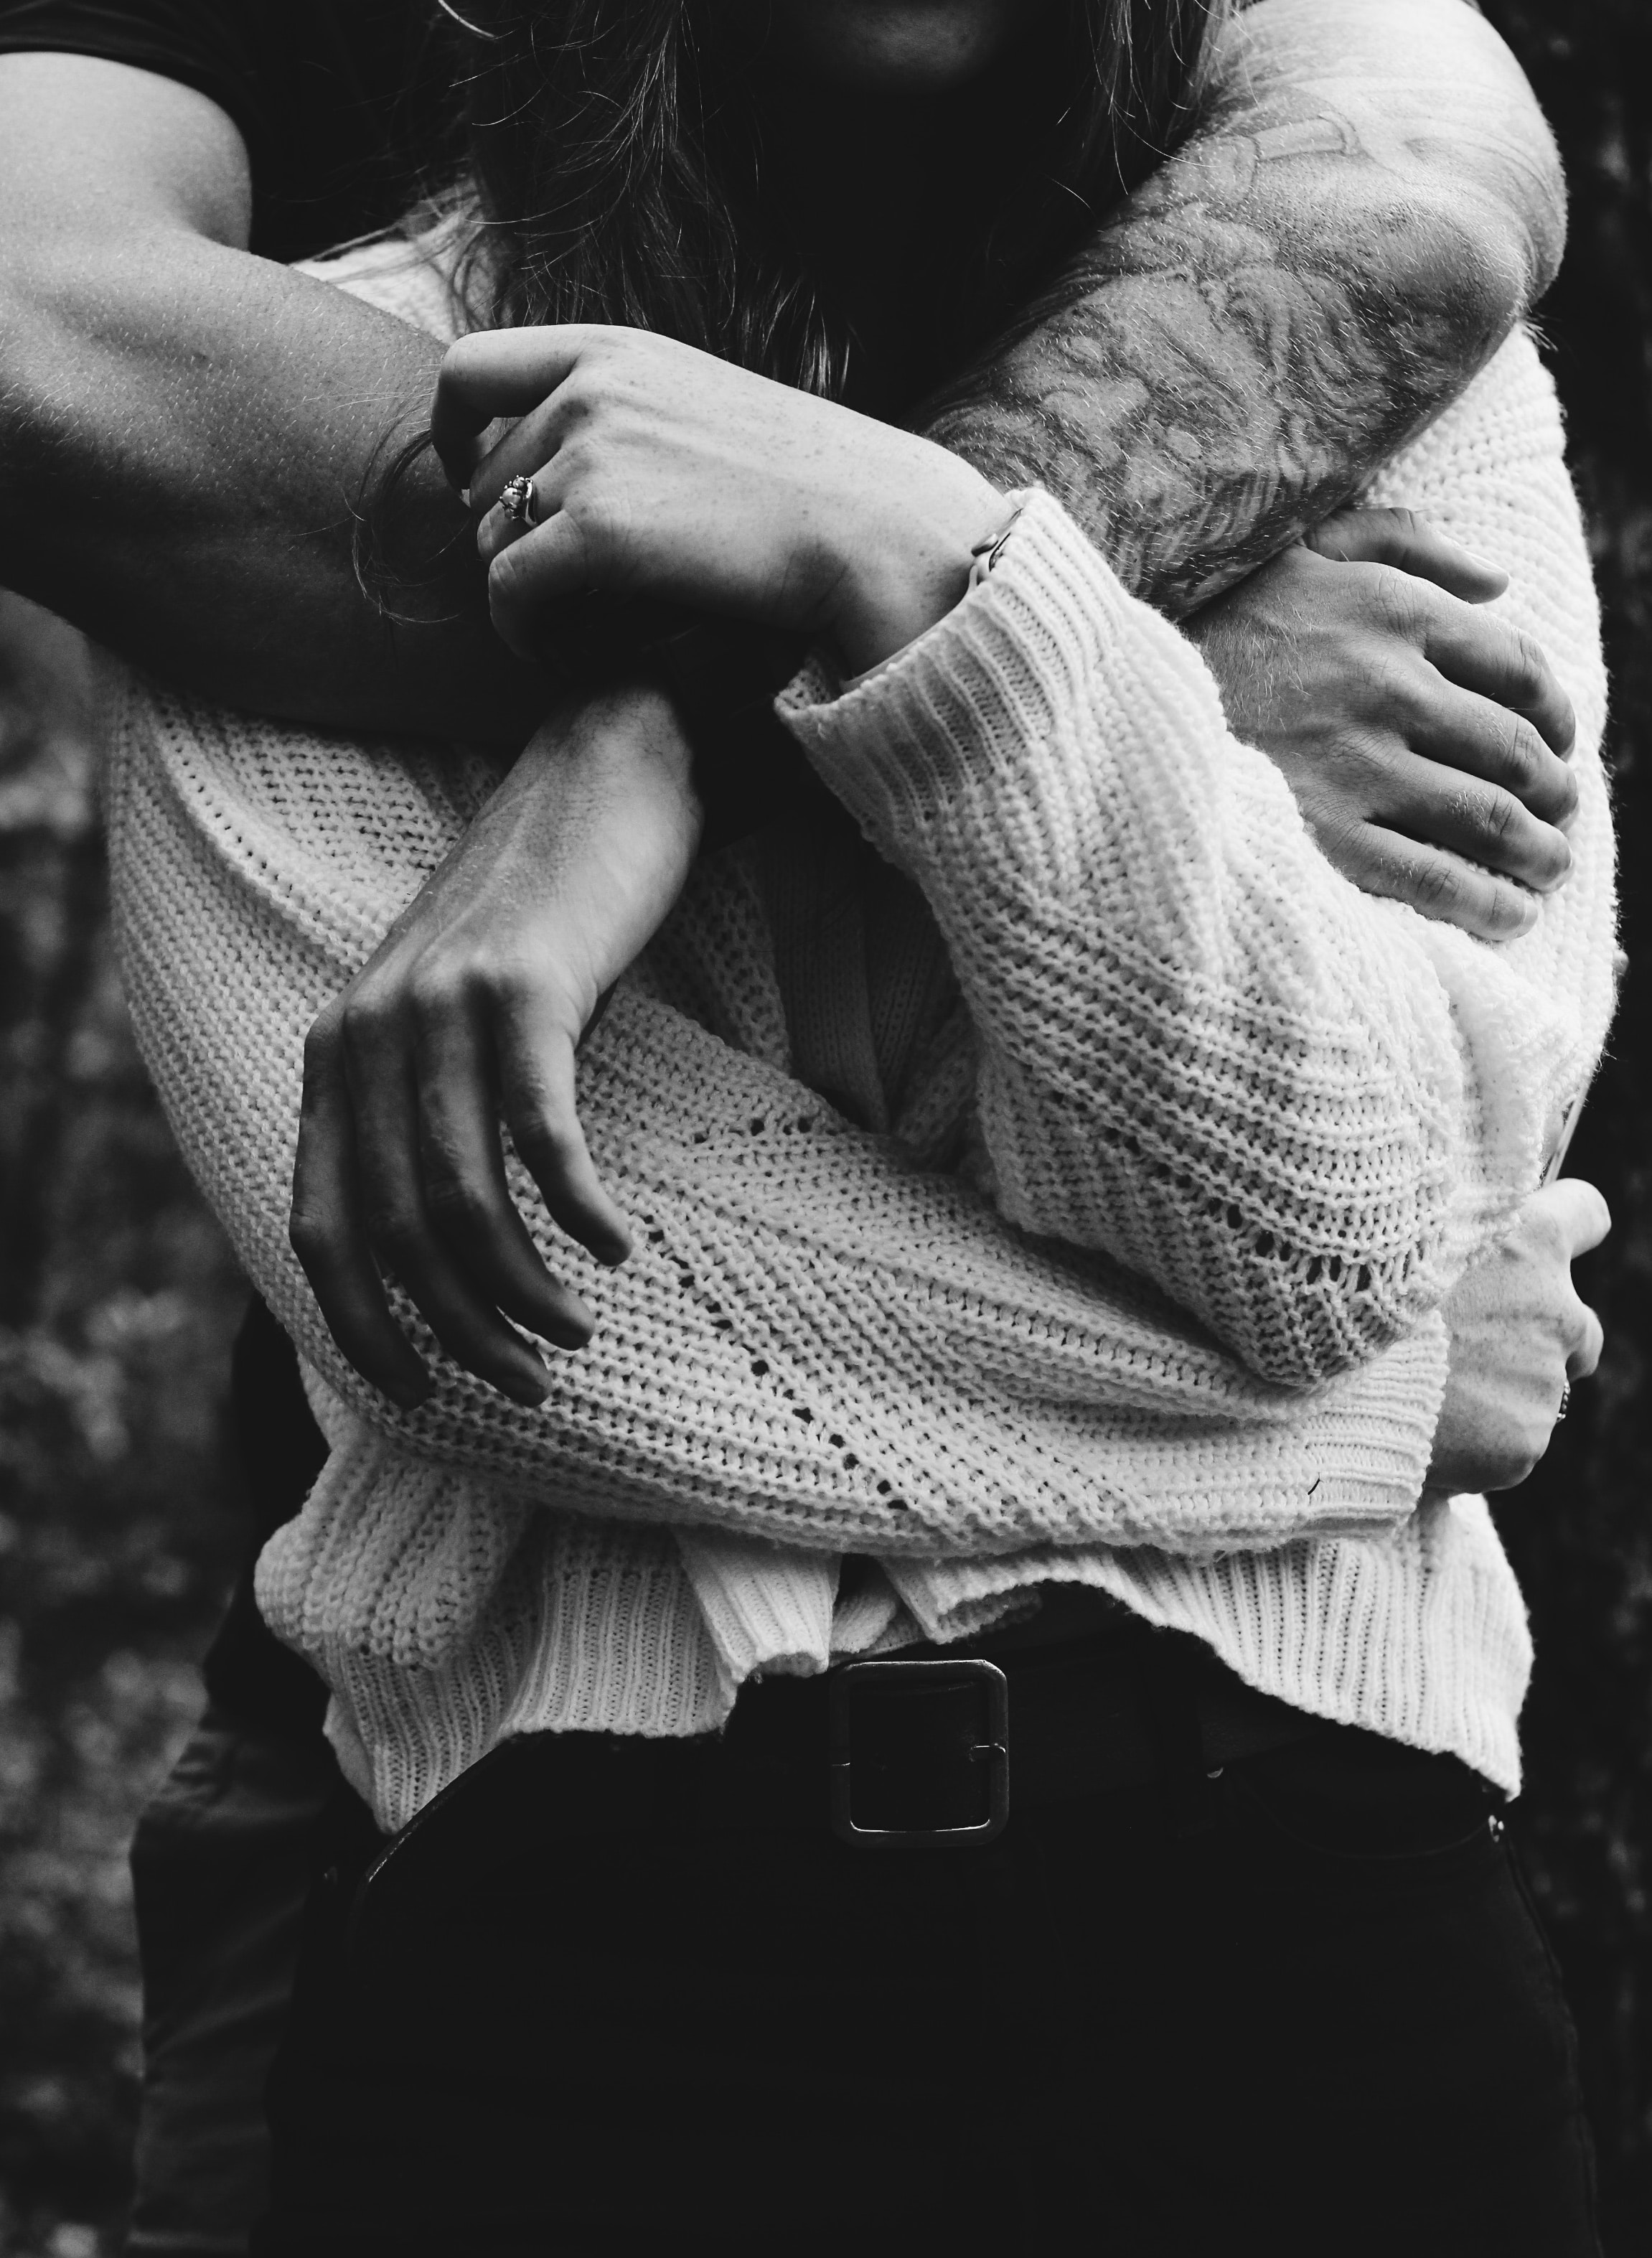 69736 download wallpaper Couple, Love, Pair, Hands, Bw, Chb, Embrace screensavers and pictures for free